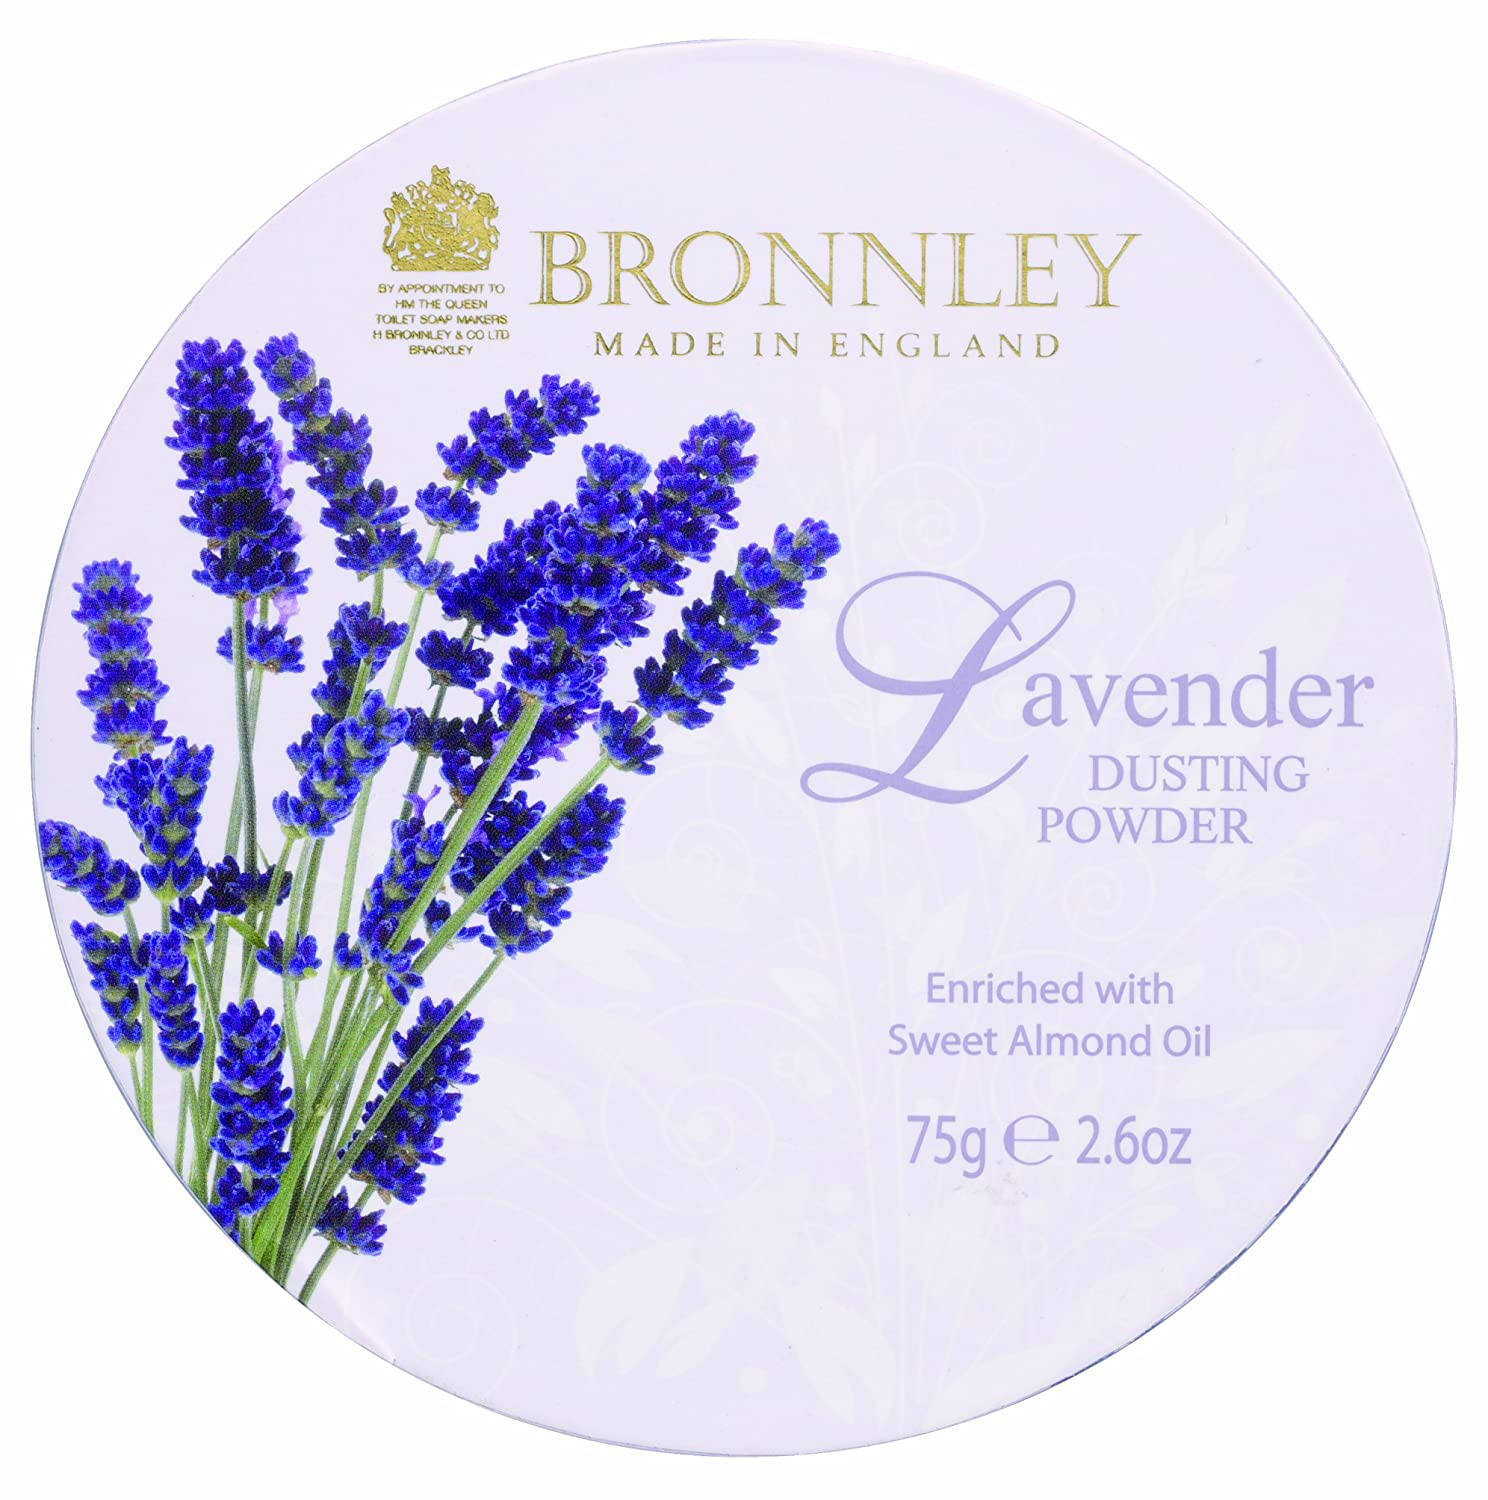 Bronnley Lavender Dusting Powder 75g H. Bronnley & Co. UK Ltd 112035